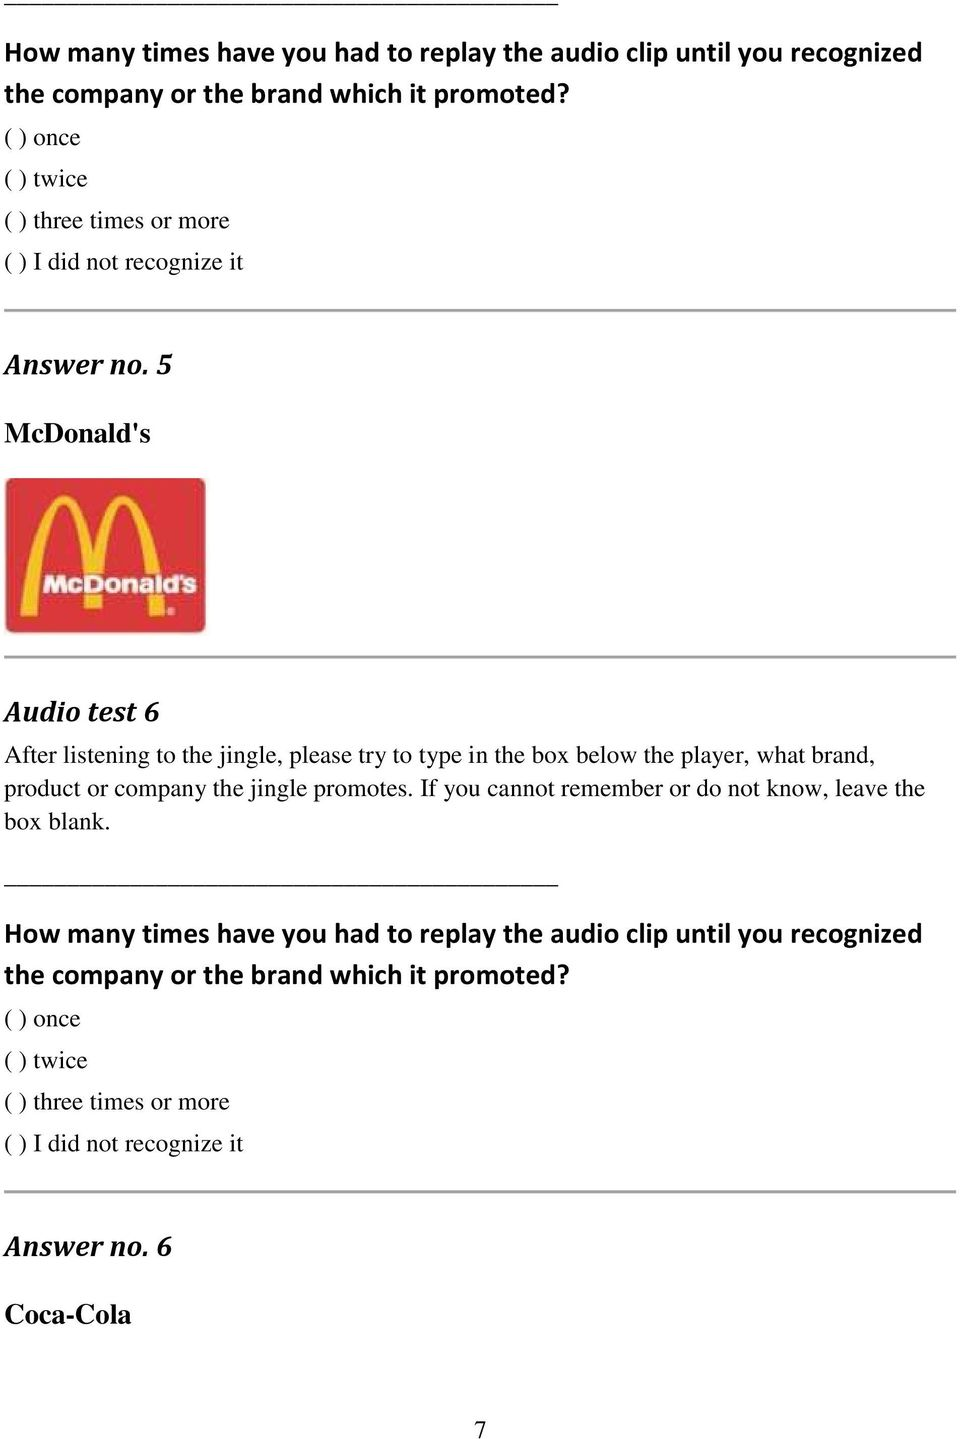 5 McDonald's Audio test 6 After listening to the jingle, please try to type in the box below the player, what brand, product or company the jingle promotes.